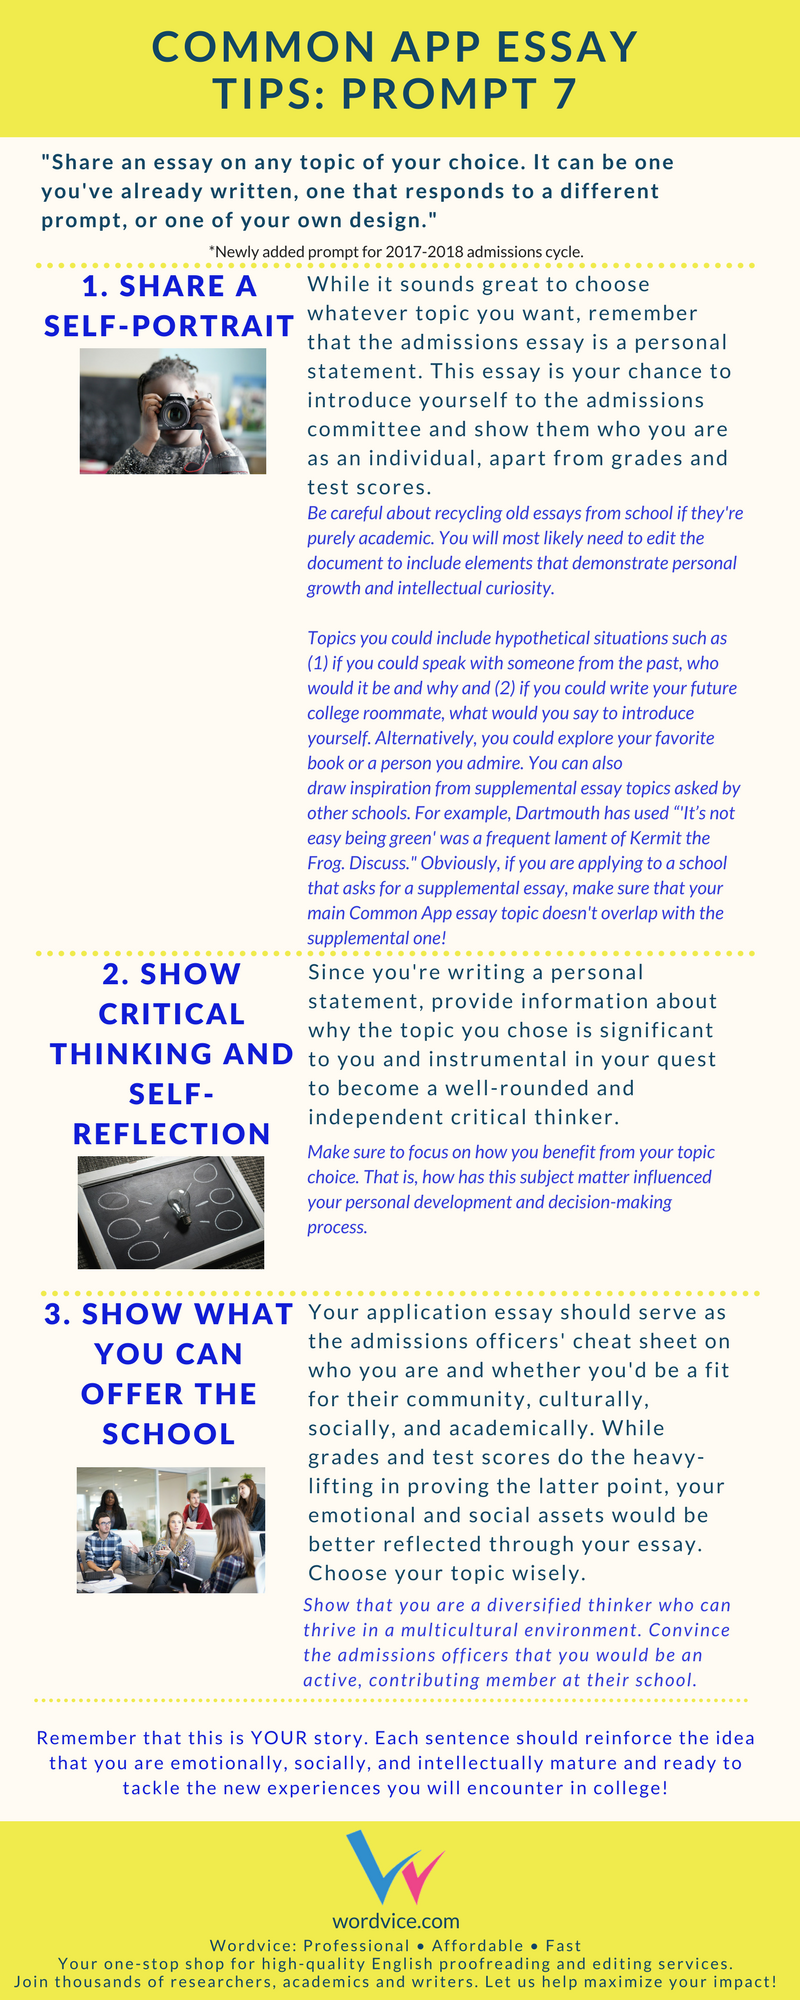 006 Common Application Essay Prompts App Brainstormprompt Imposing Word Limit 2020 Full